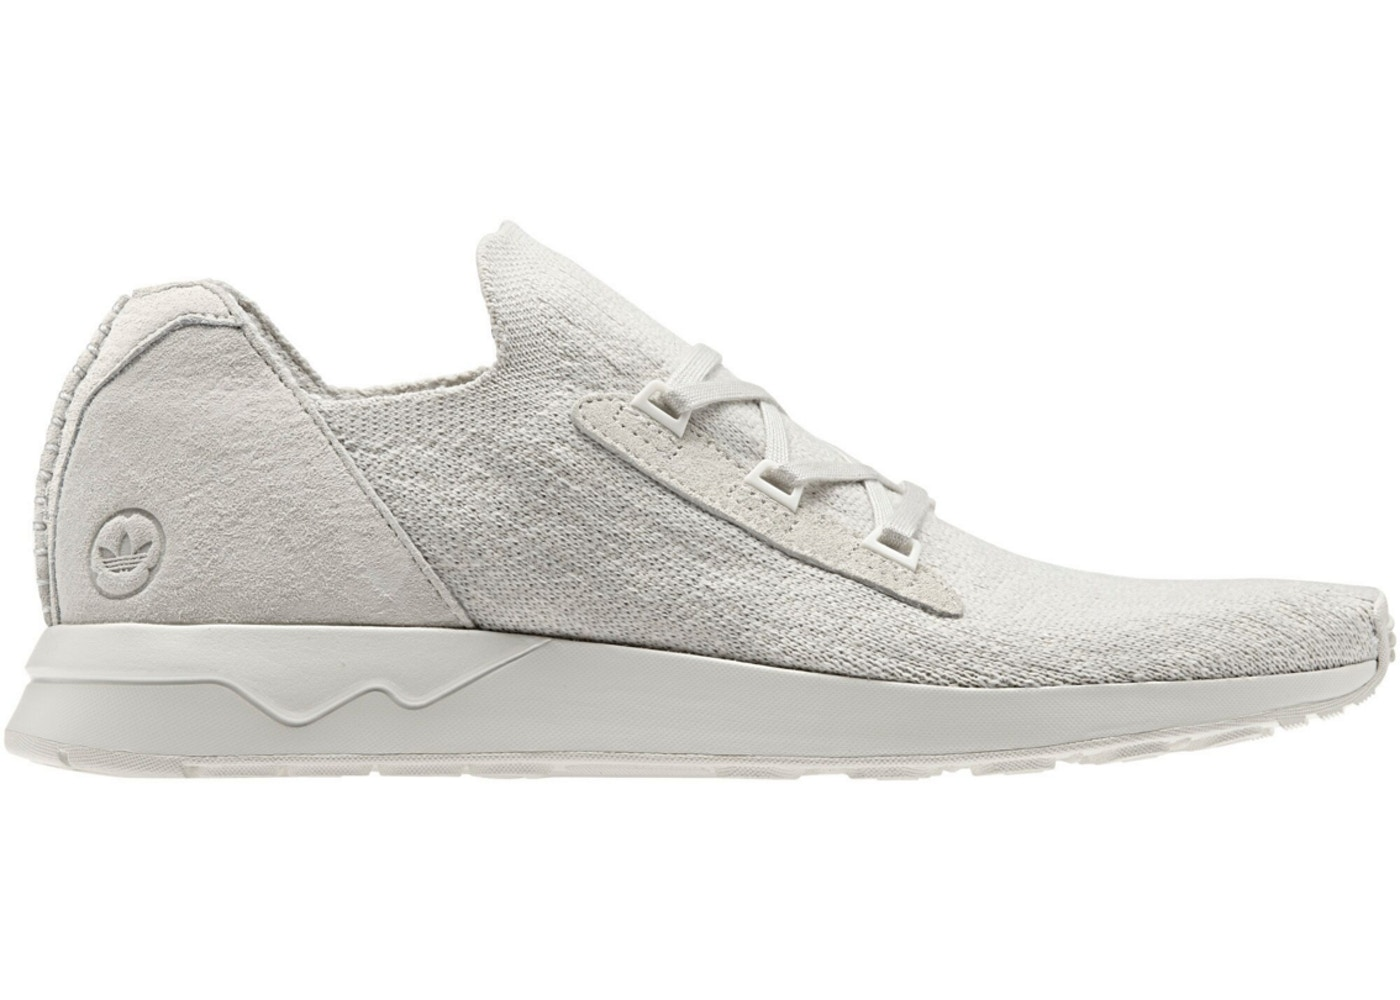 Adidas Zx Flux Adv X Mens Off White Shoes | Adidas zx flux